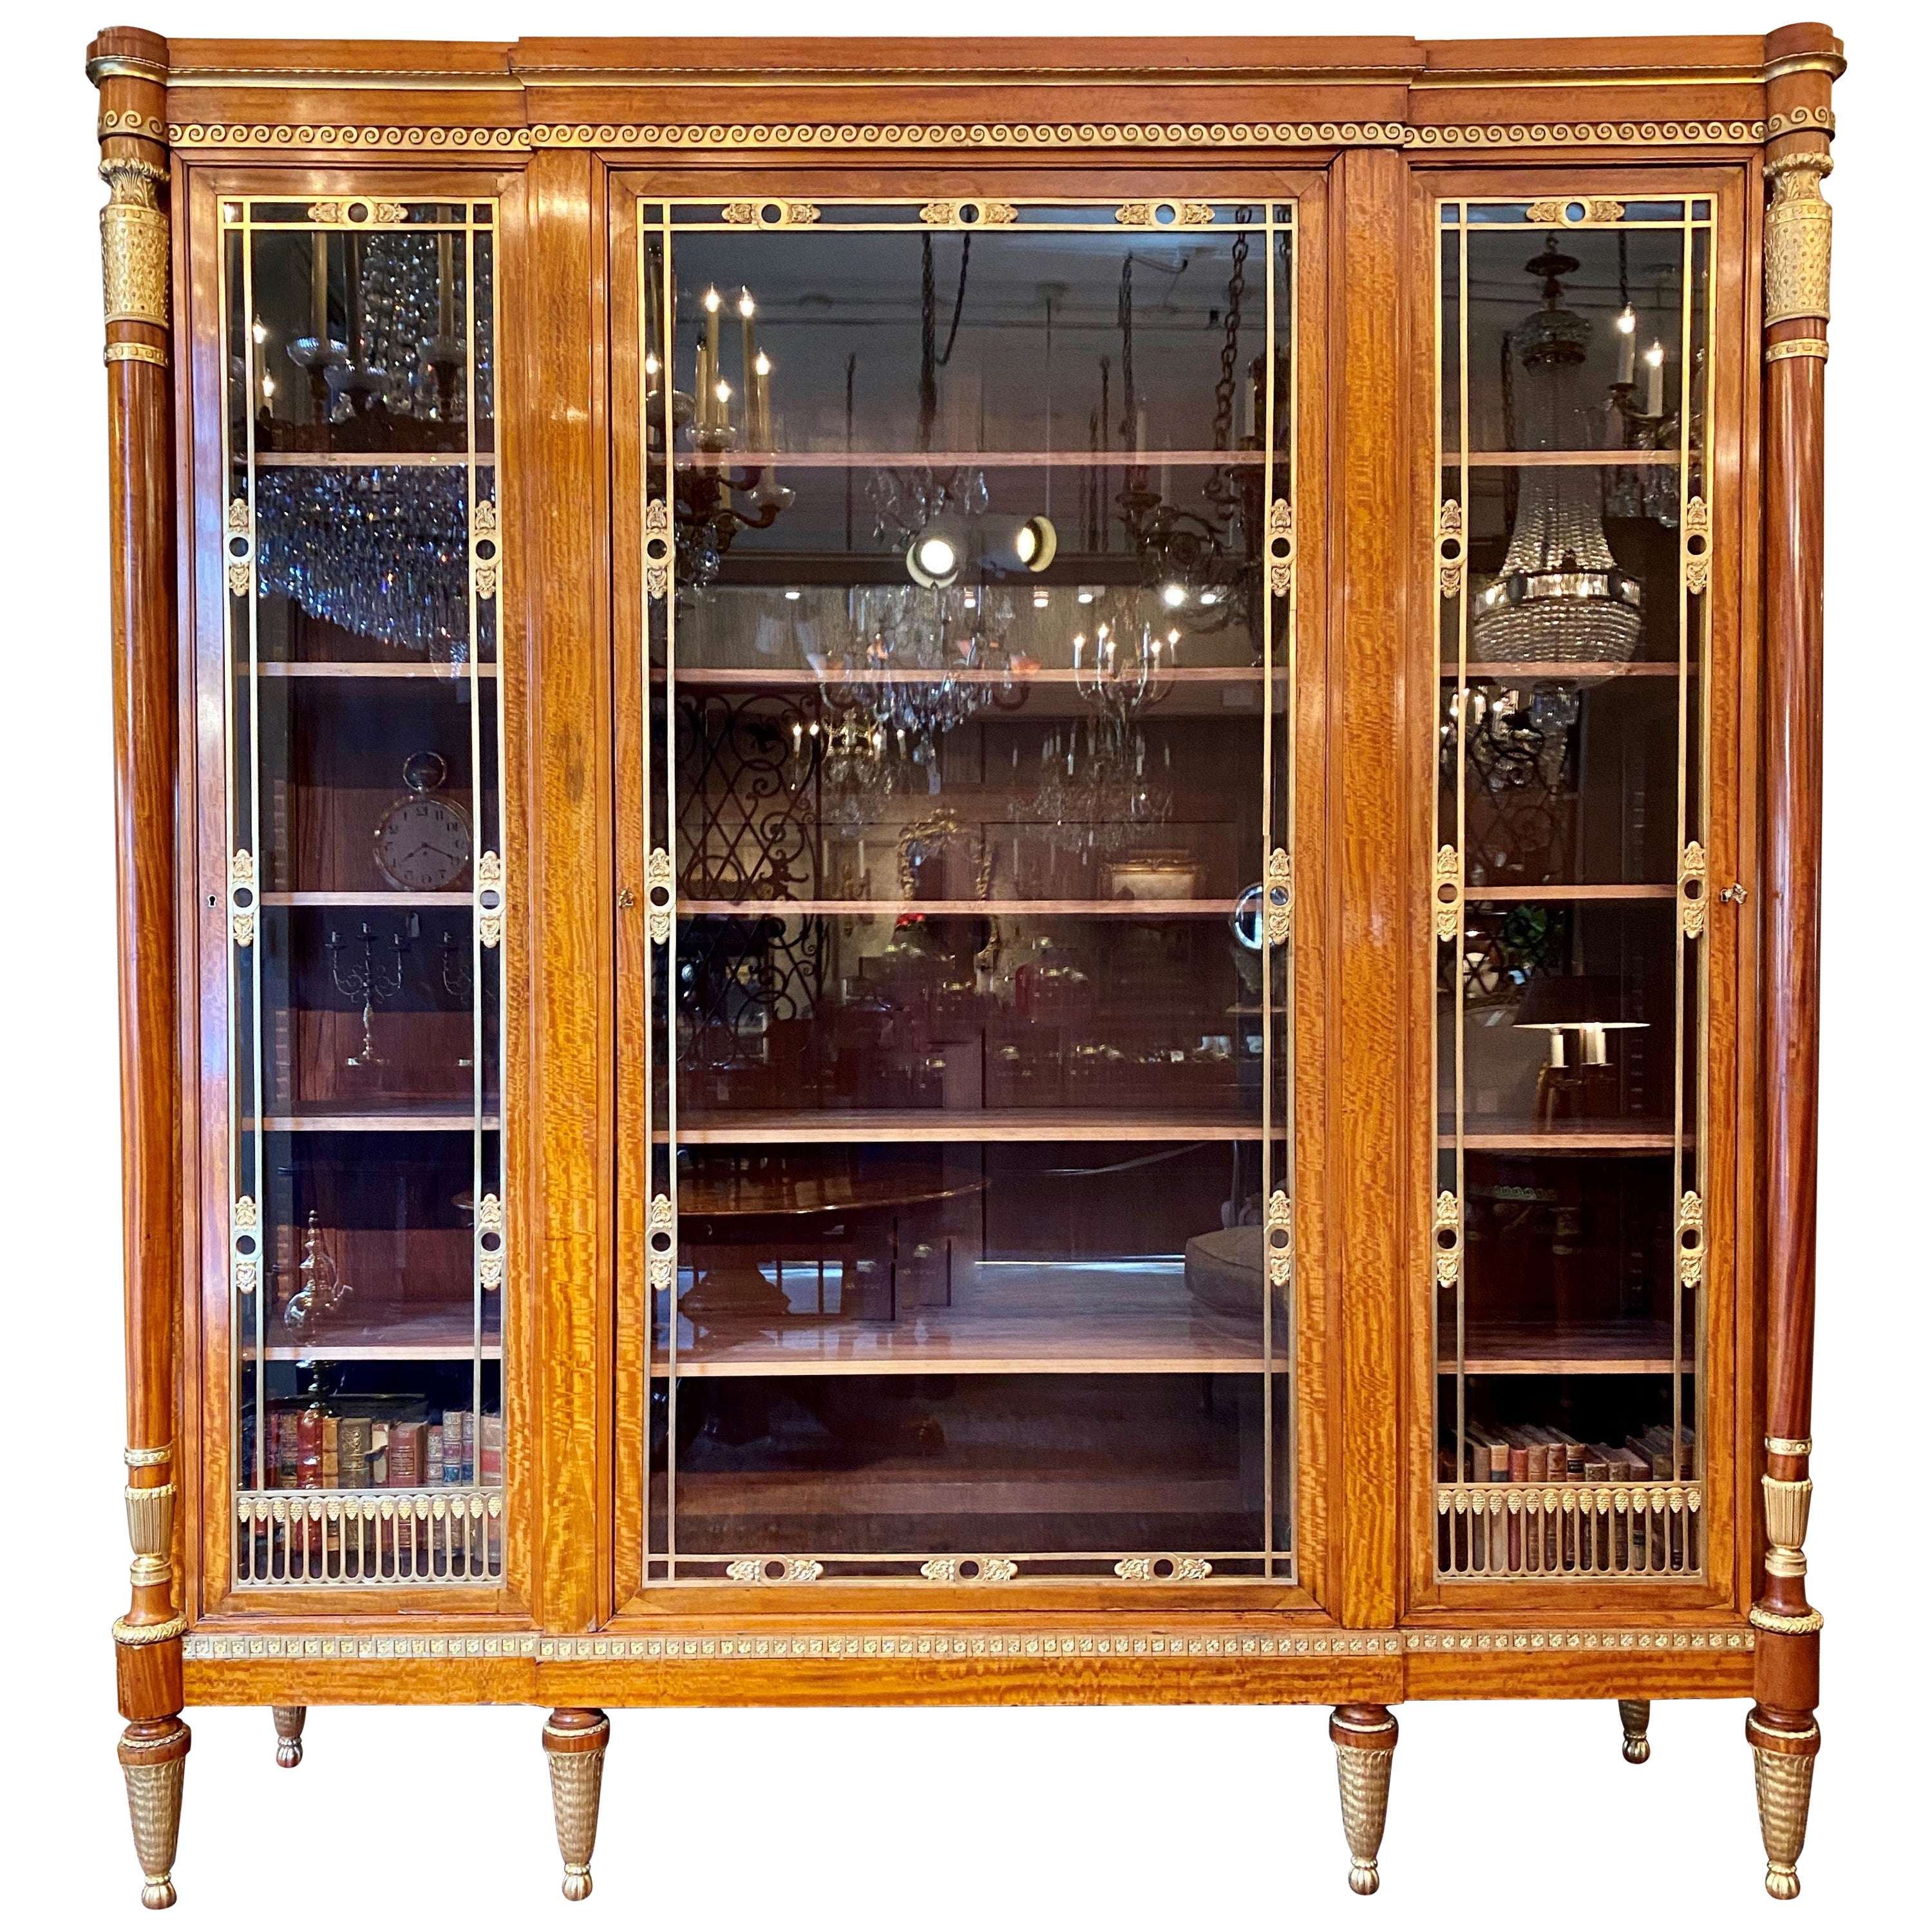 Antique French Satinwood and Bronze Dore Vitrine or Display Cabinet, circa 1890